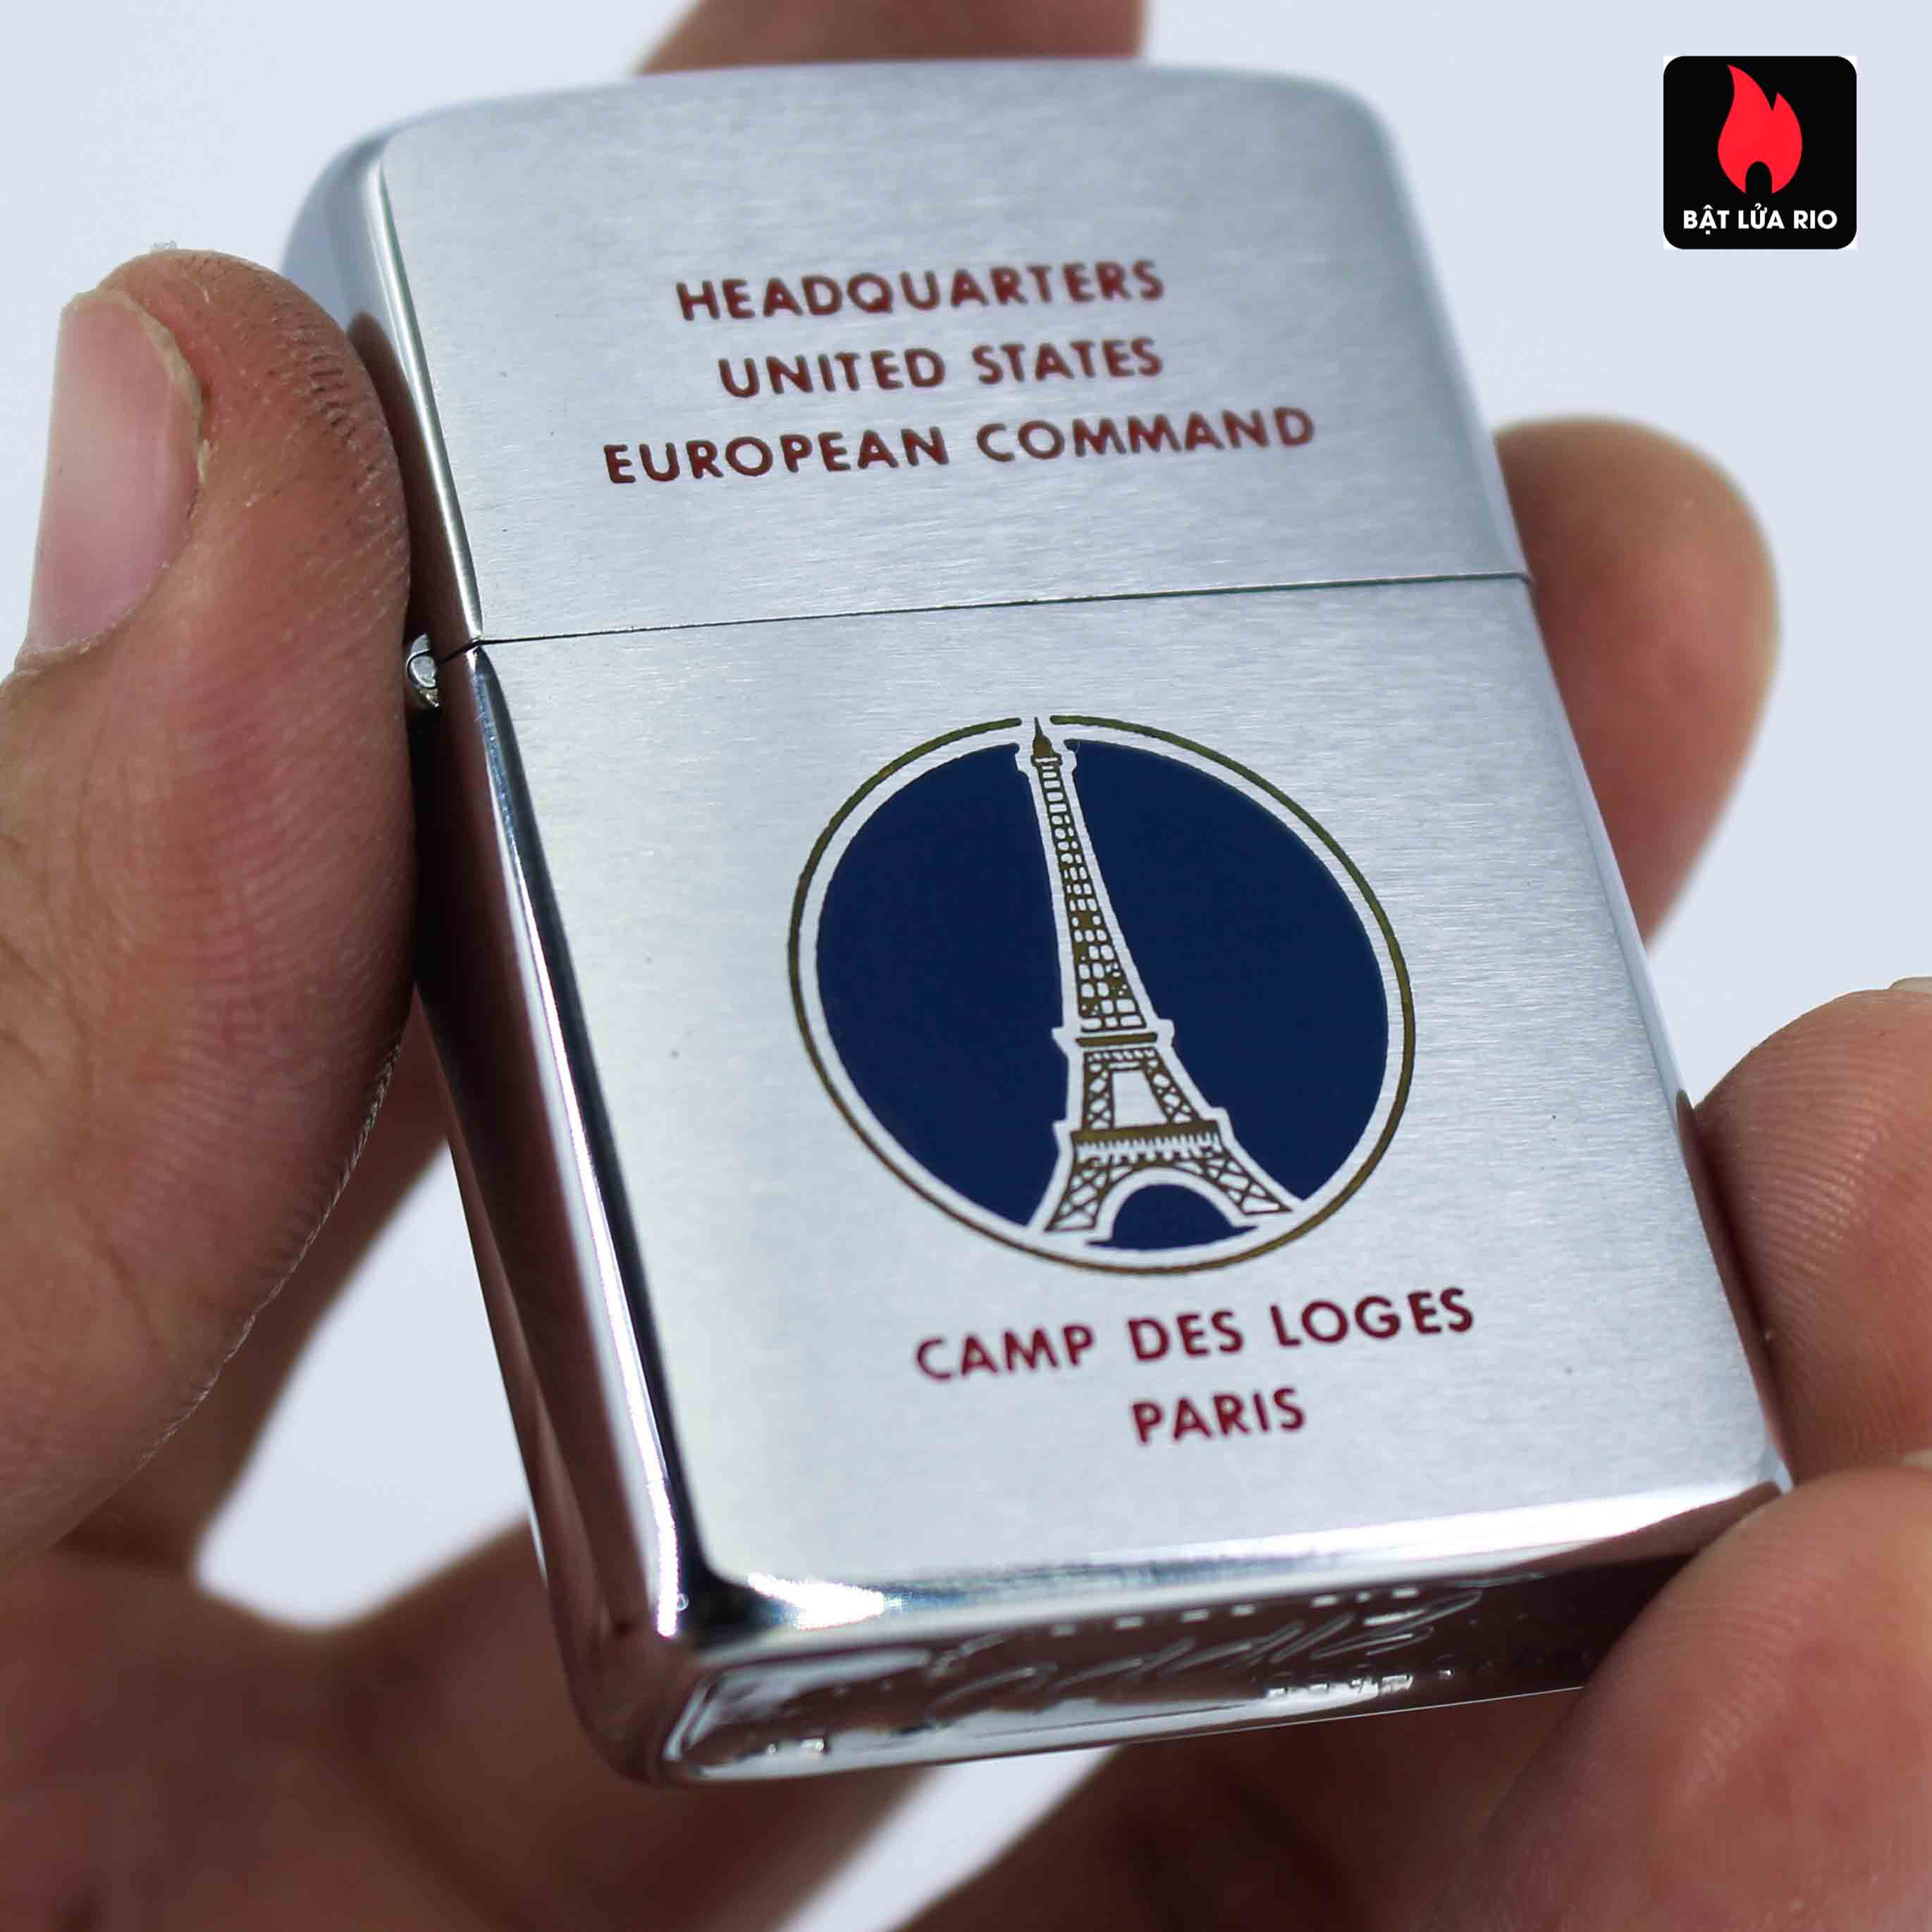 Zippo Xưa 1958 - Camp Des Loges Paris - Headquartes United States European Command 4